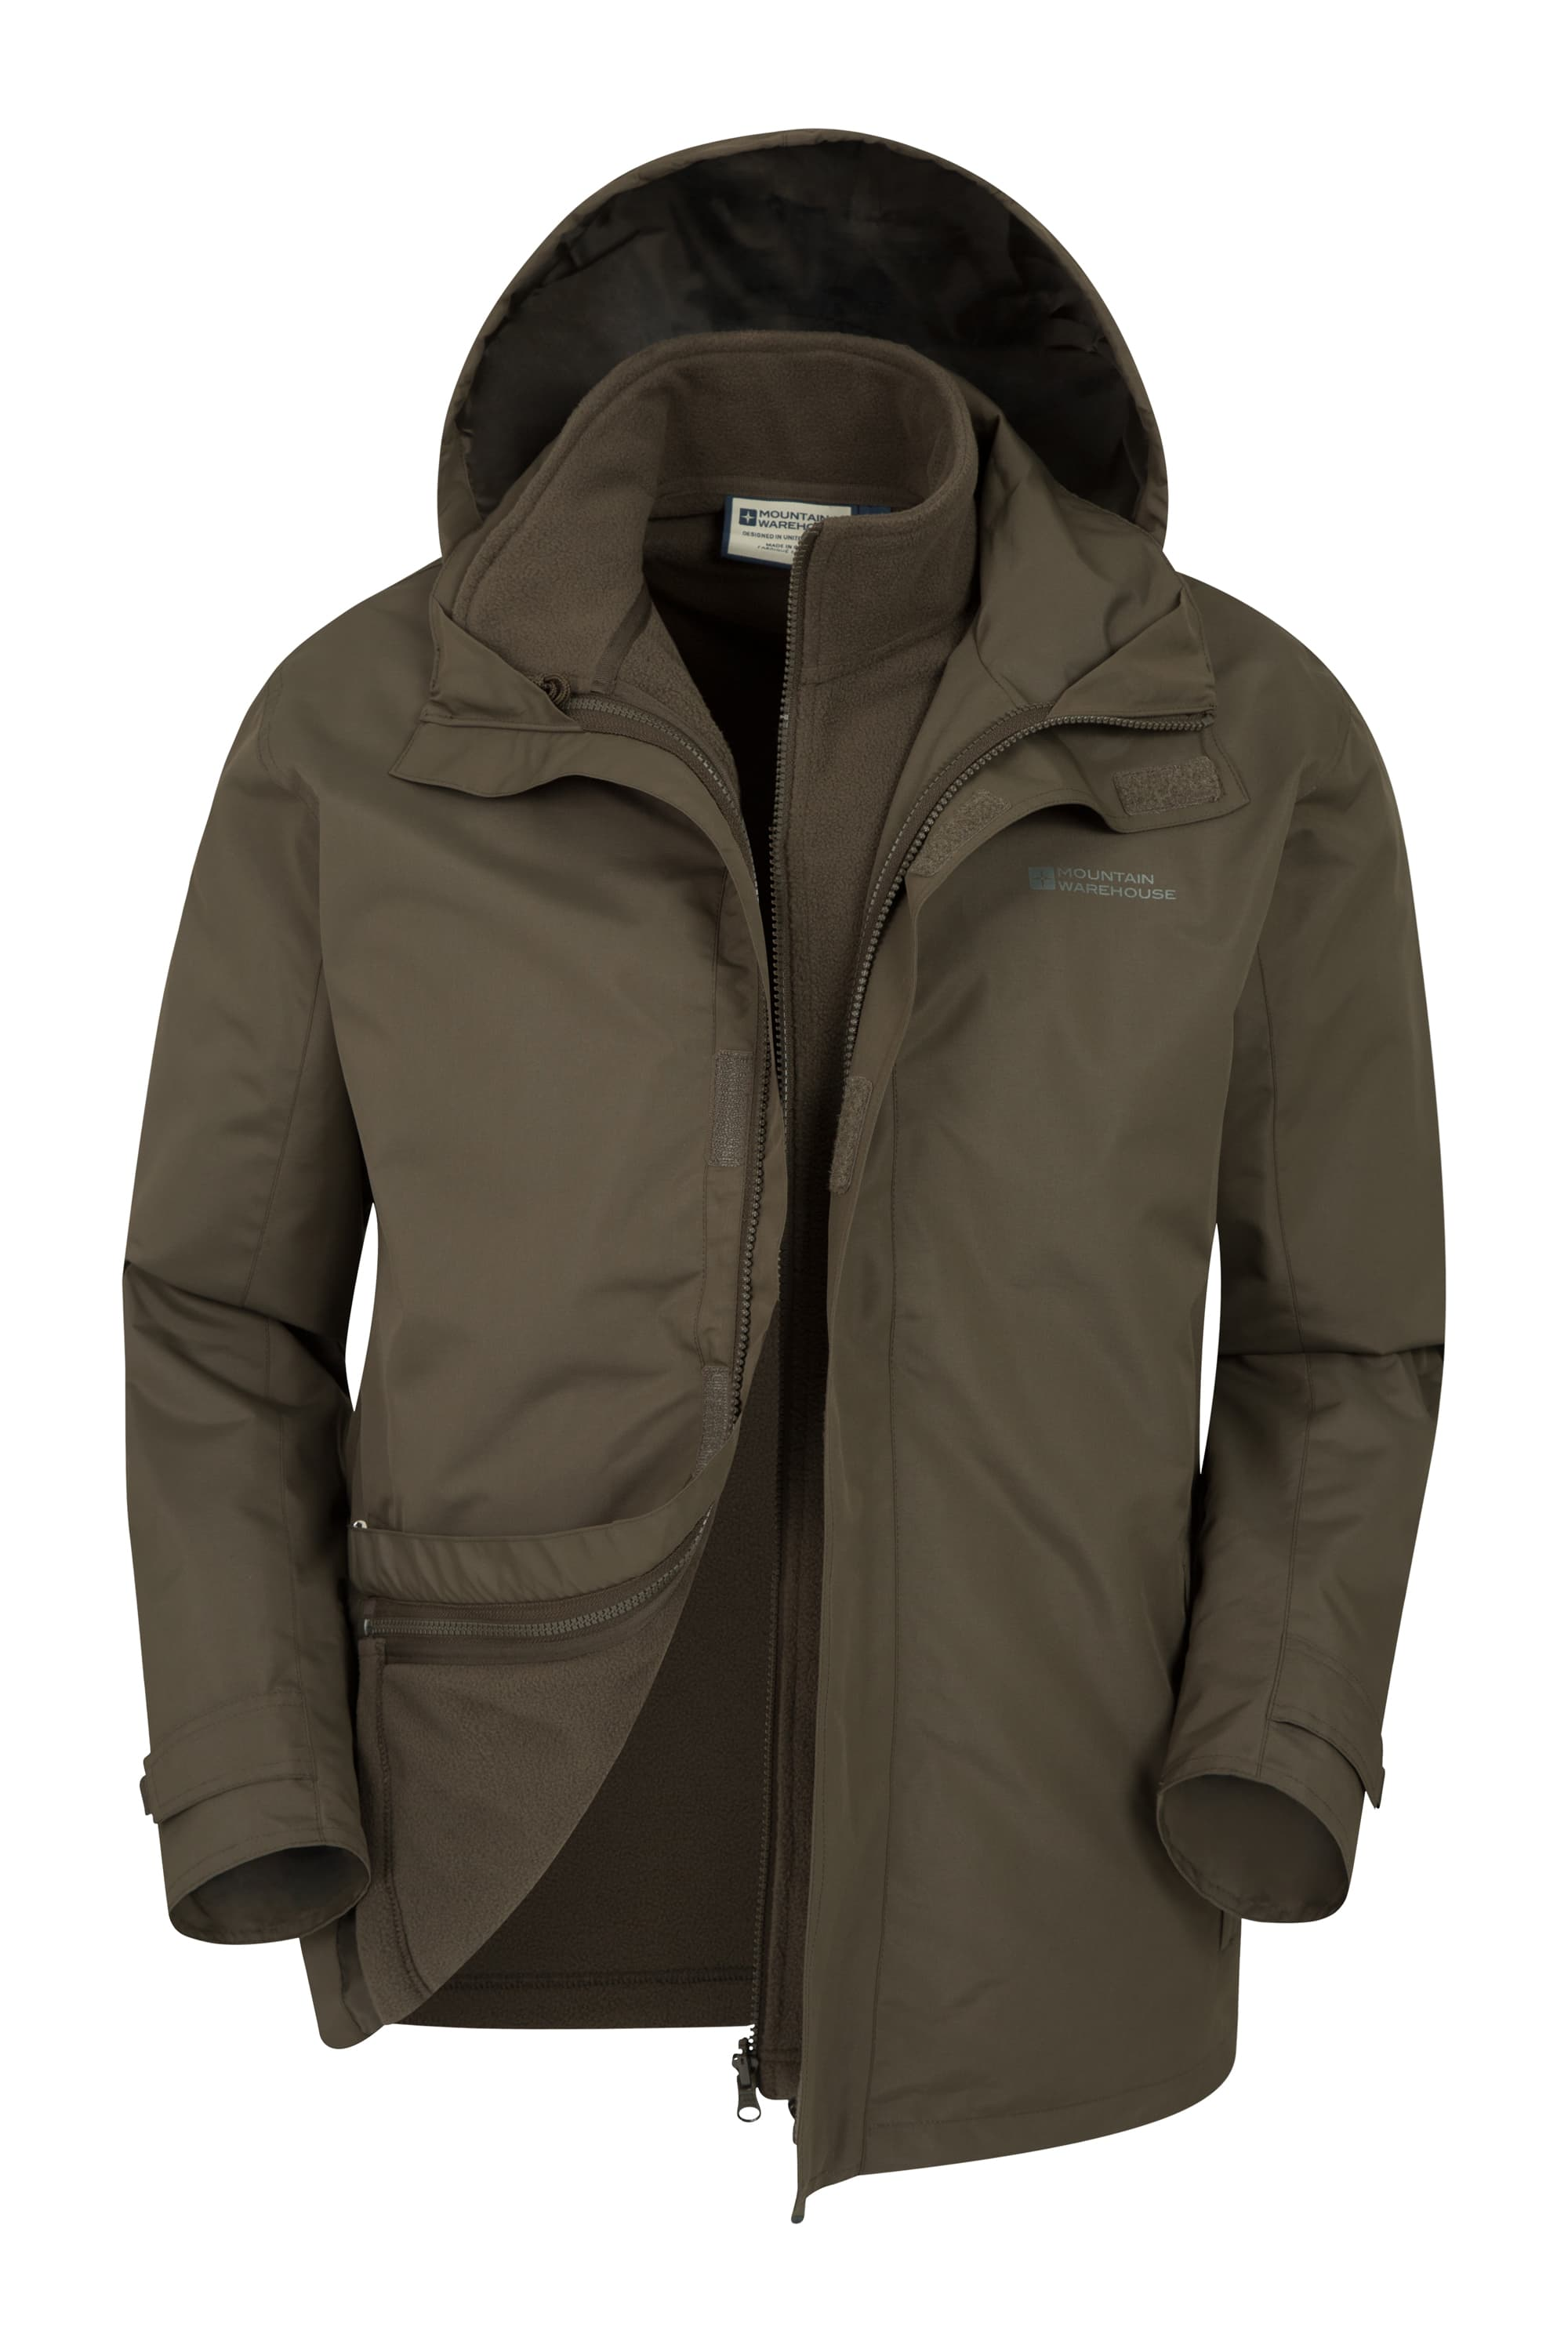 b92049db4bf Fell Men s or Women s 3-in-1 Water Resistant Jacket - Page 4 ...